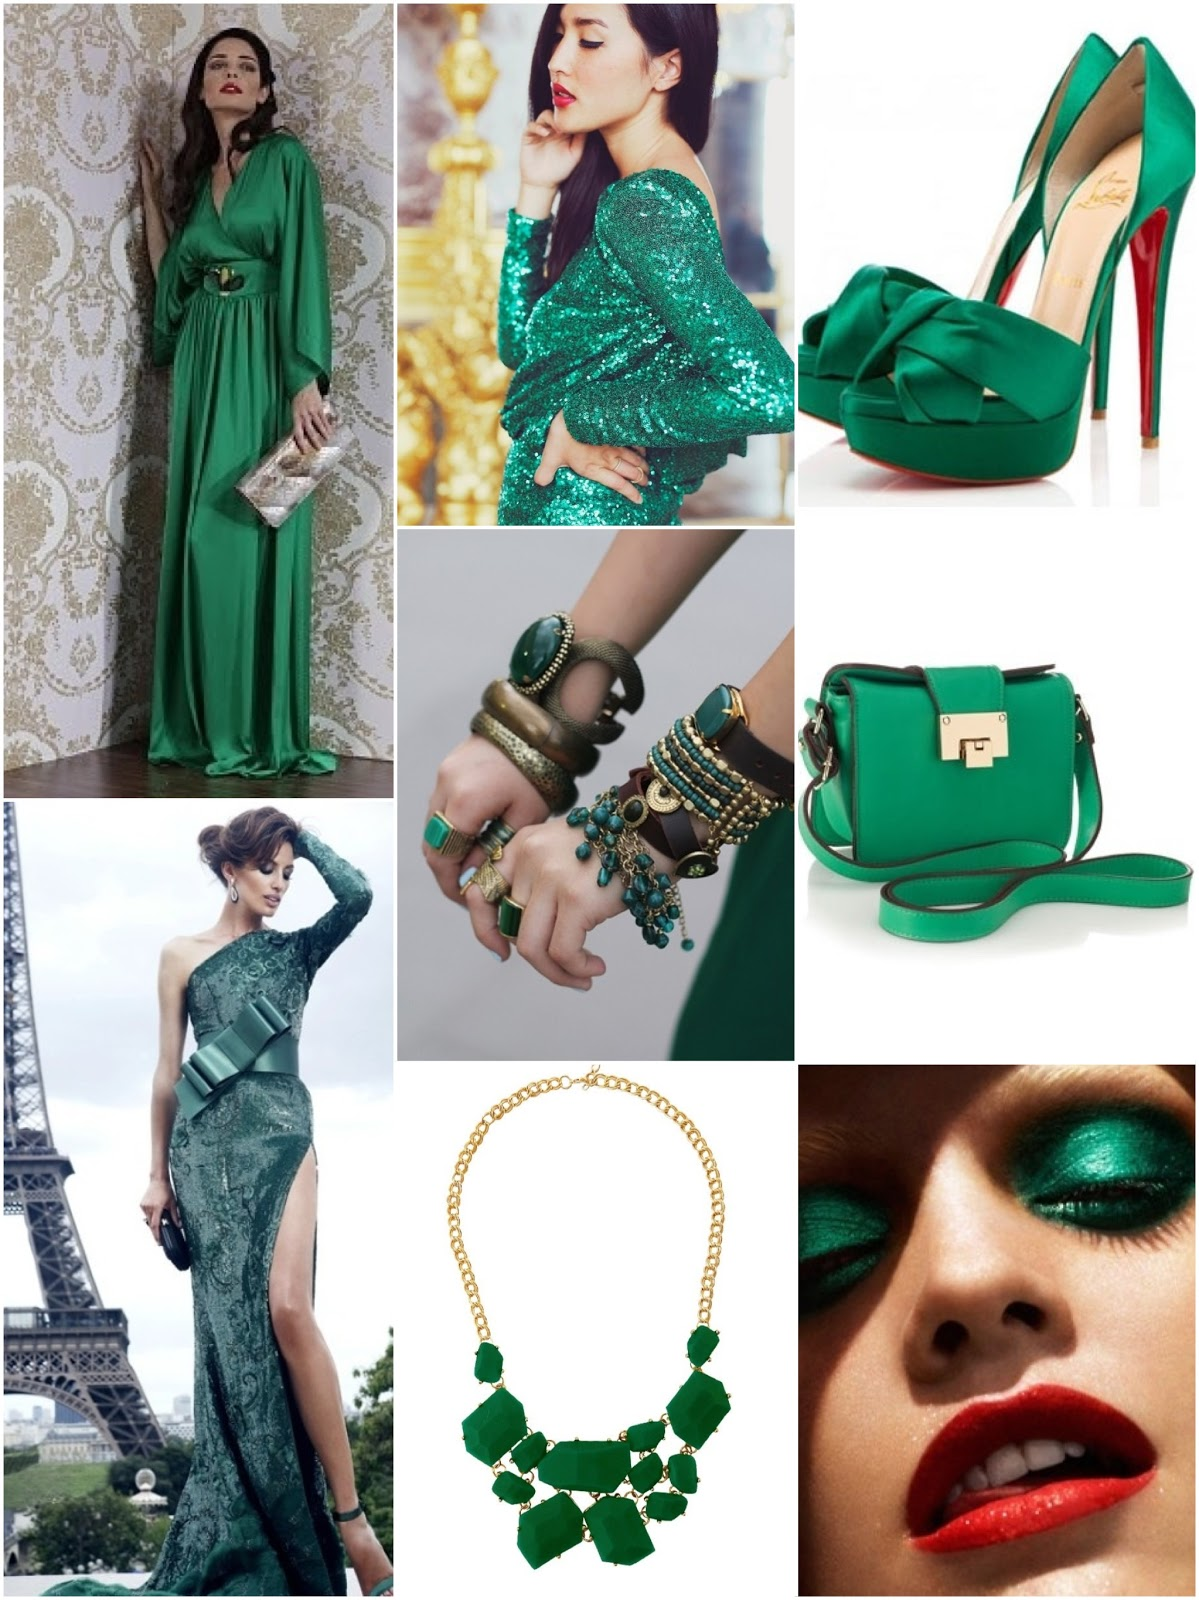 So Hurry Up To Buy A Few Emerald Green Clothing Pieces And Learn Ways Create Drop Dead Gorgeous Looks Getting Inspired From The Following